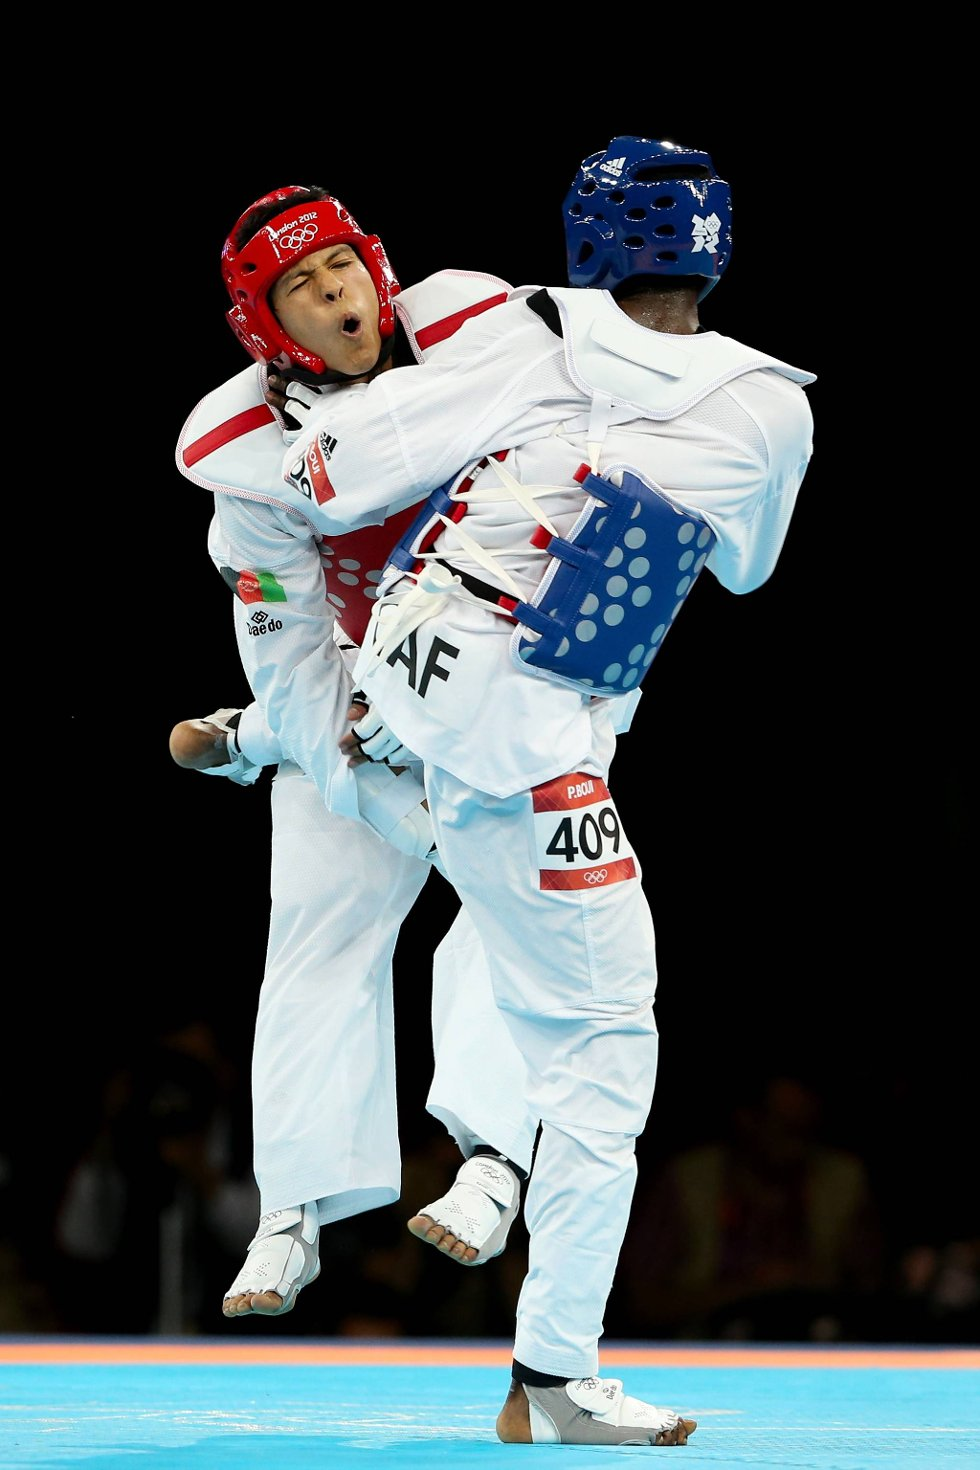 Auda! Rohulla Nikpah fra Afghanistan ser ikke ut til å ha det veldig bra mot David Boui i -68 kilosklassen i taekwondo. (Foto: Scott Heavey, Getty Images/All Over Press/ANB)